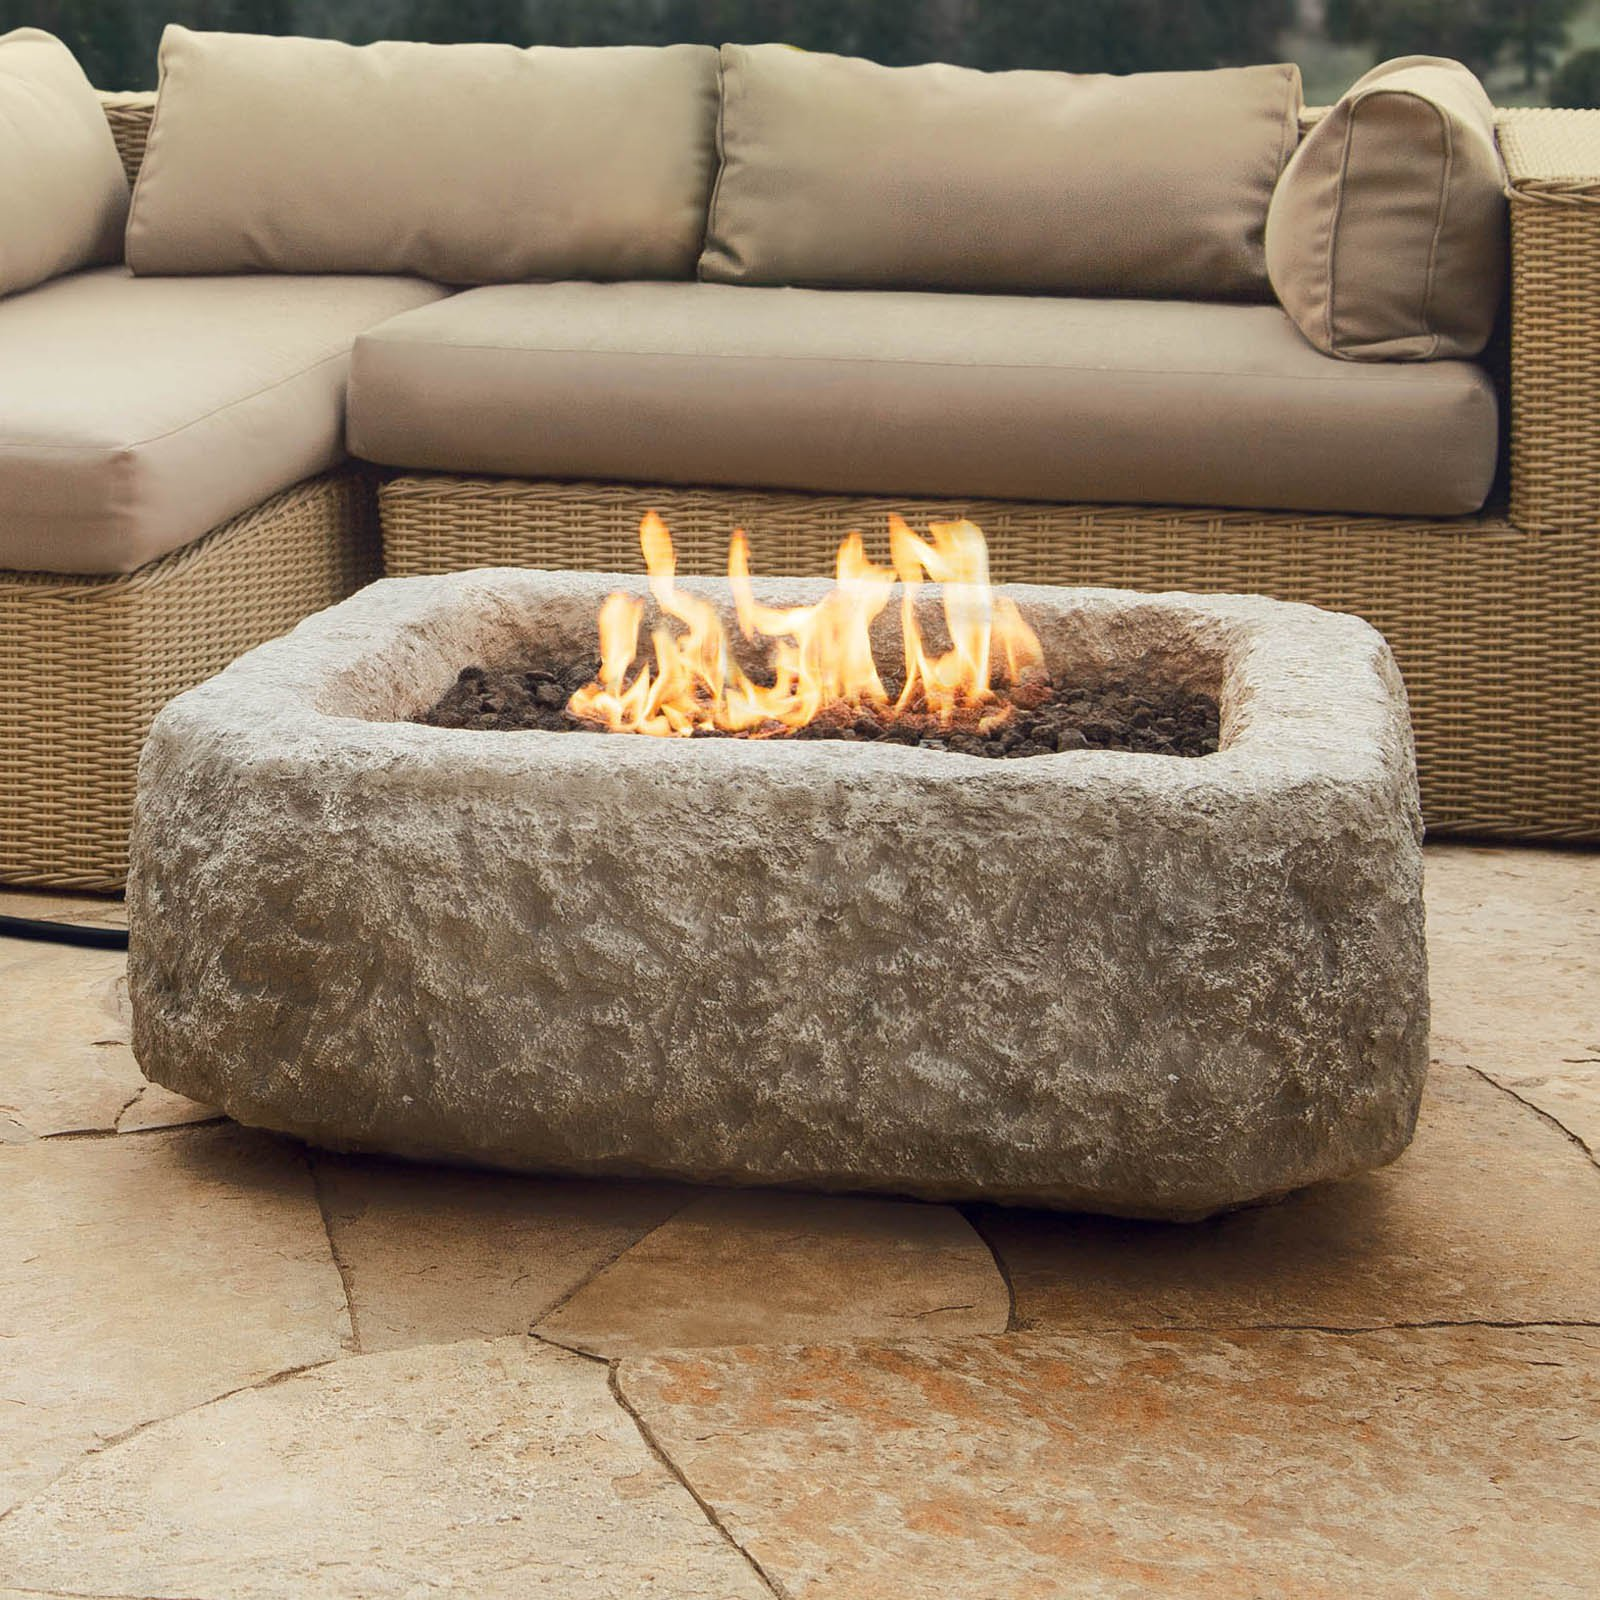 Real Flame Antique Stone Square Propane Fire Pit Table